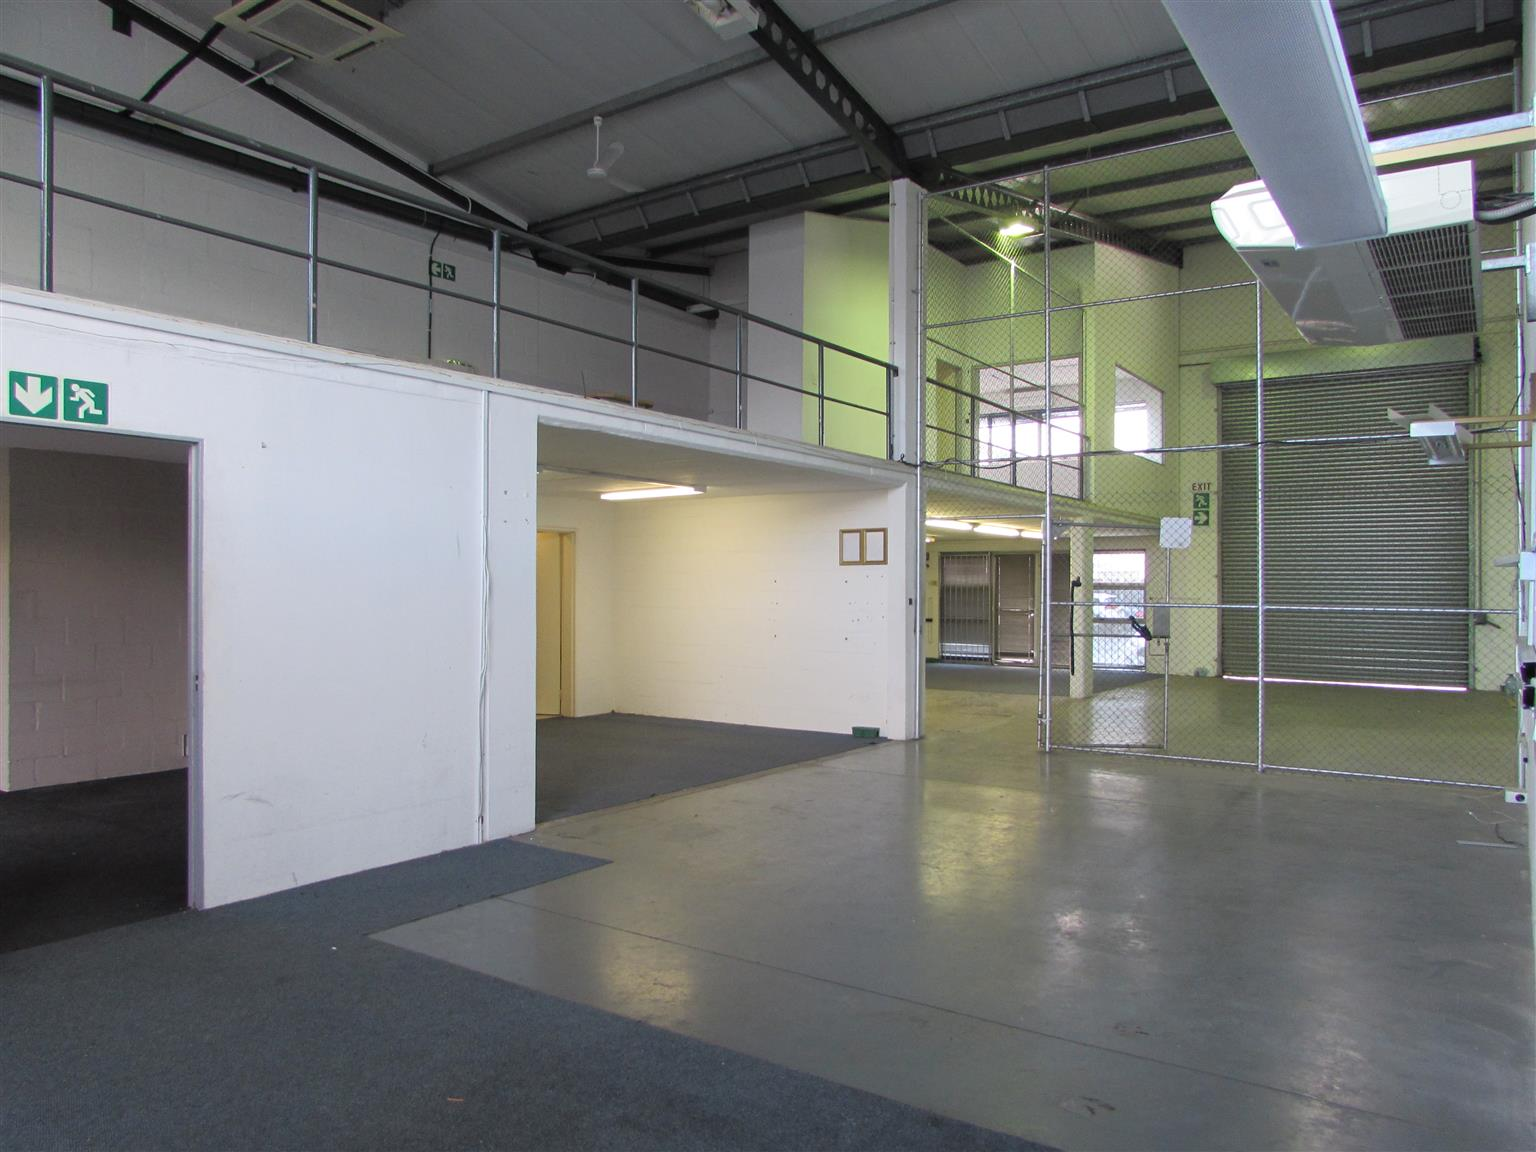 MONTAGUE GARDENS: 296m2 Warehouse To Let